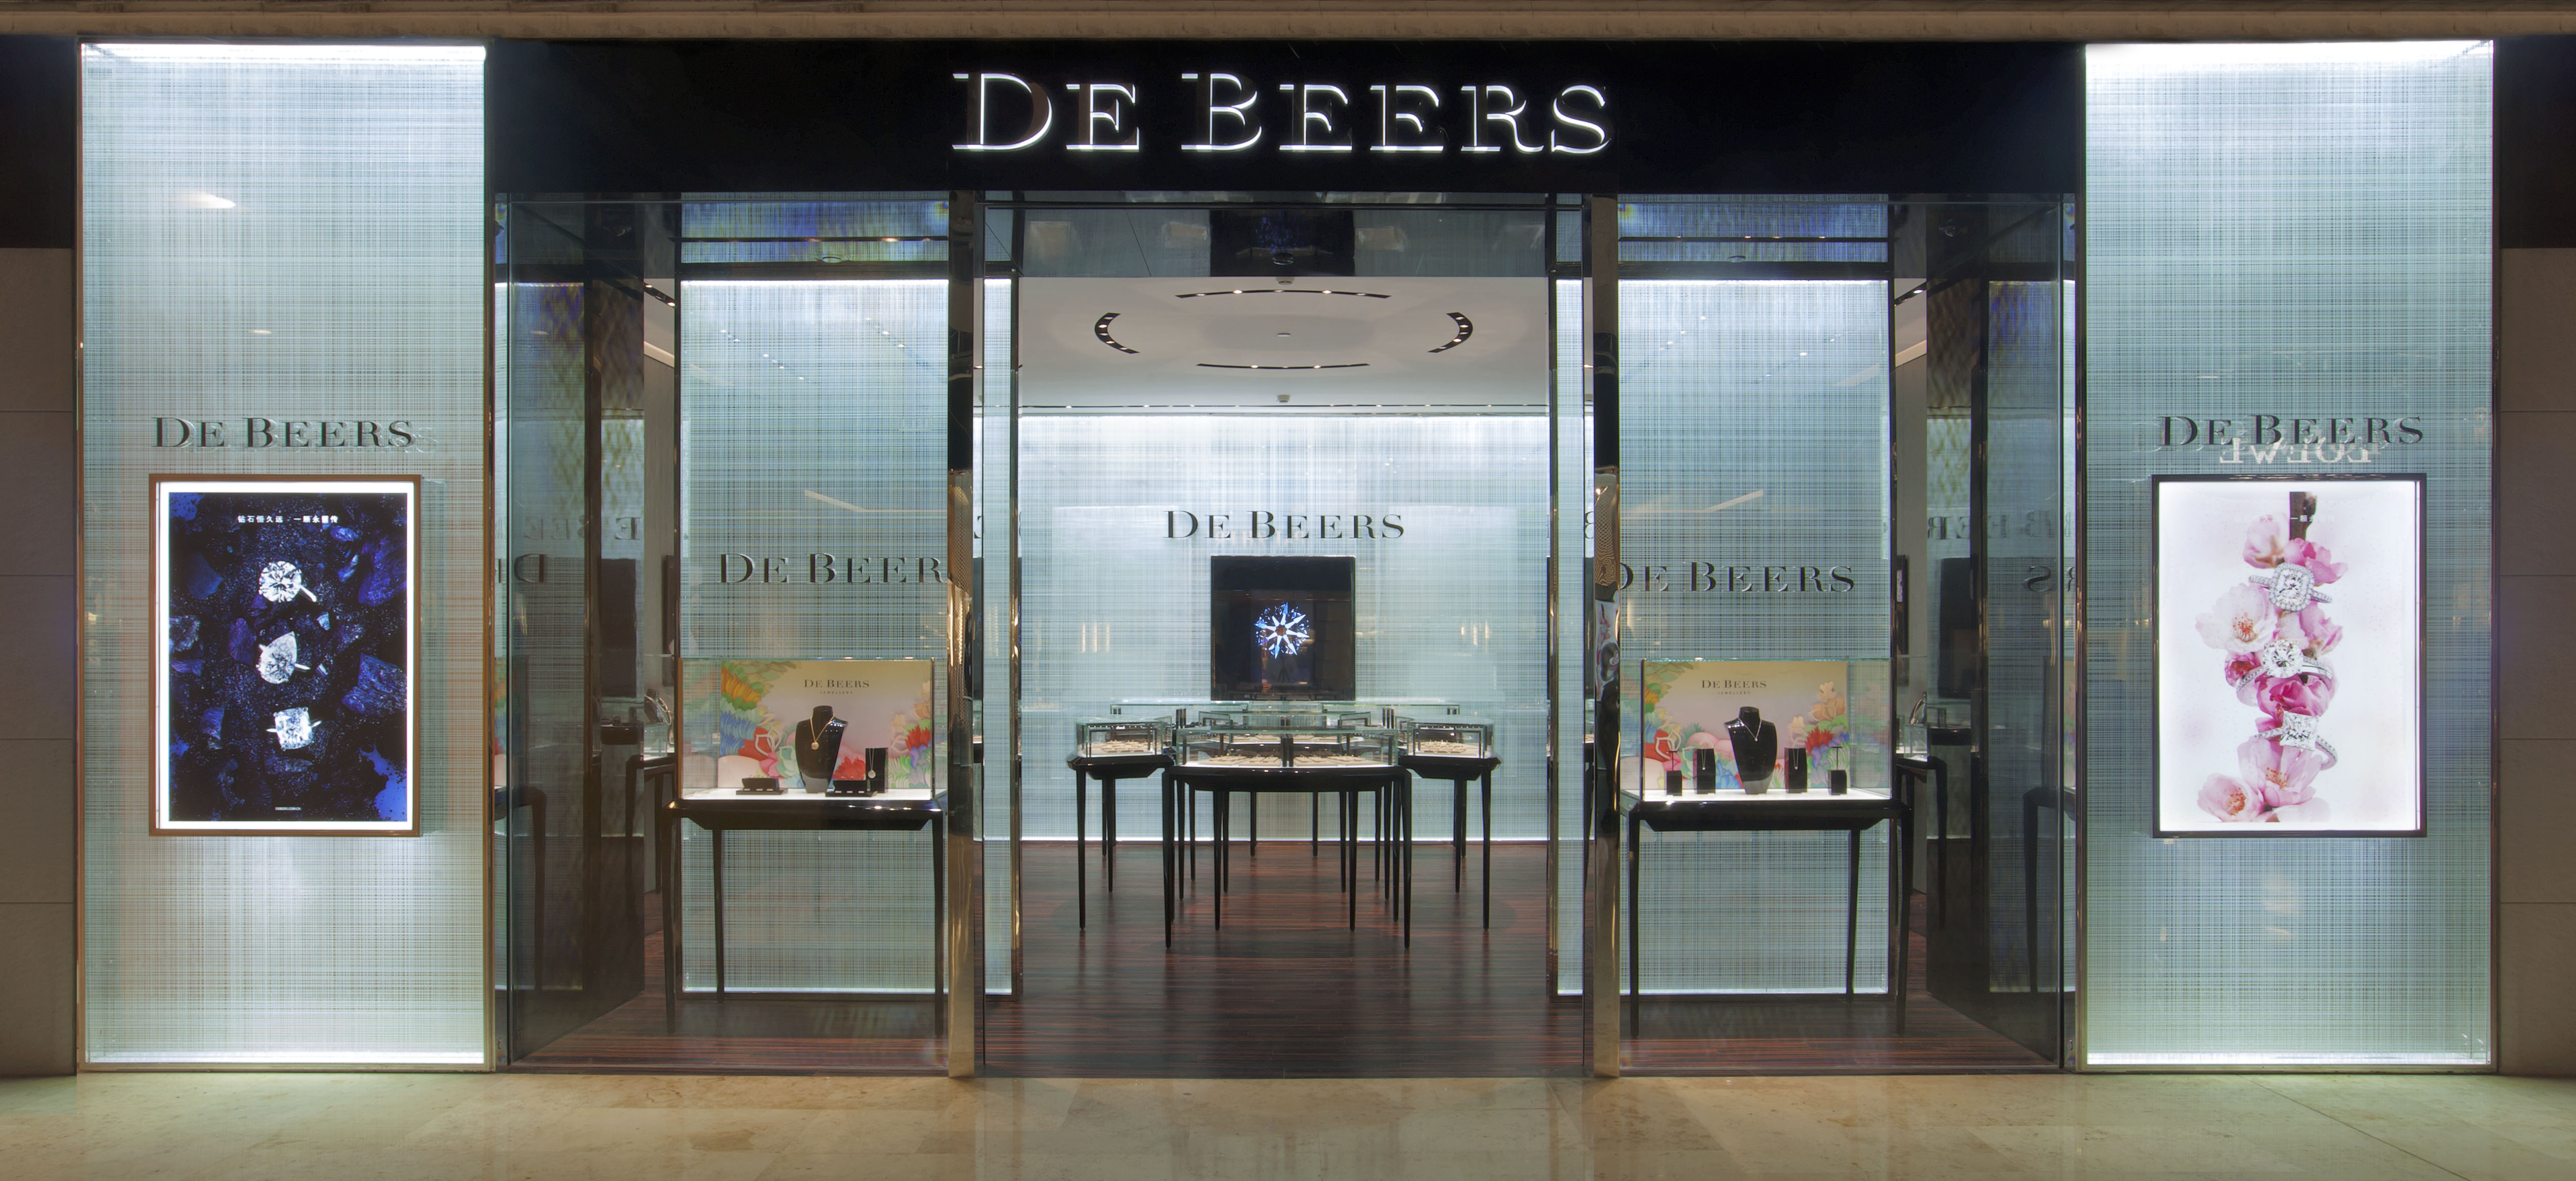 de beers succeed in accruing the De beers sa: de beers sa diamonds were first discovered in southern africa in the mid-1860s on the farm of nicolaas and diederick de eventually success.